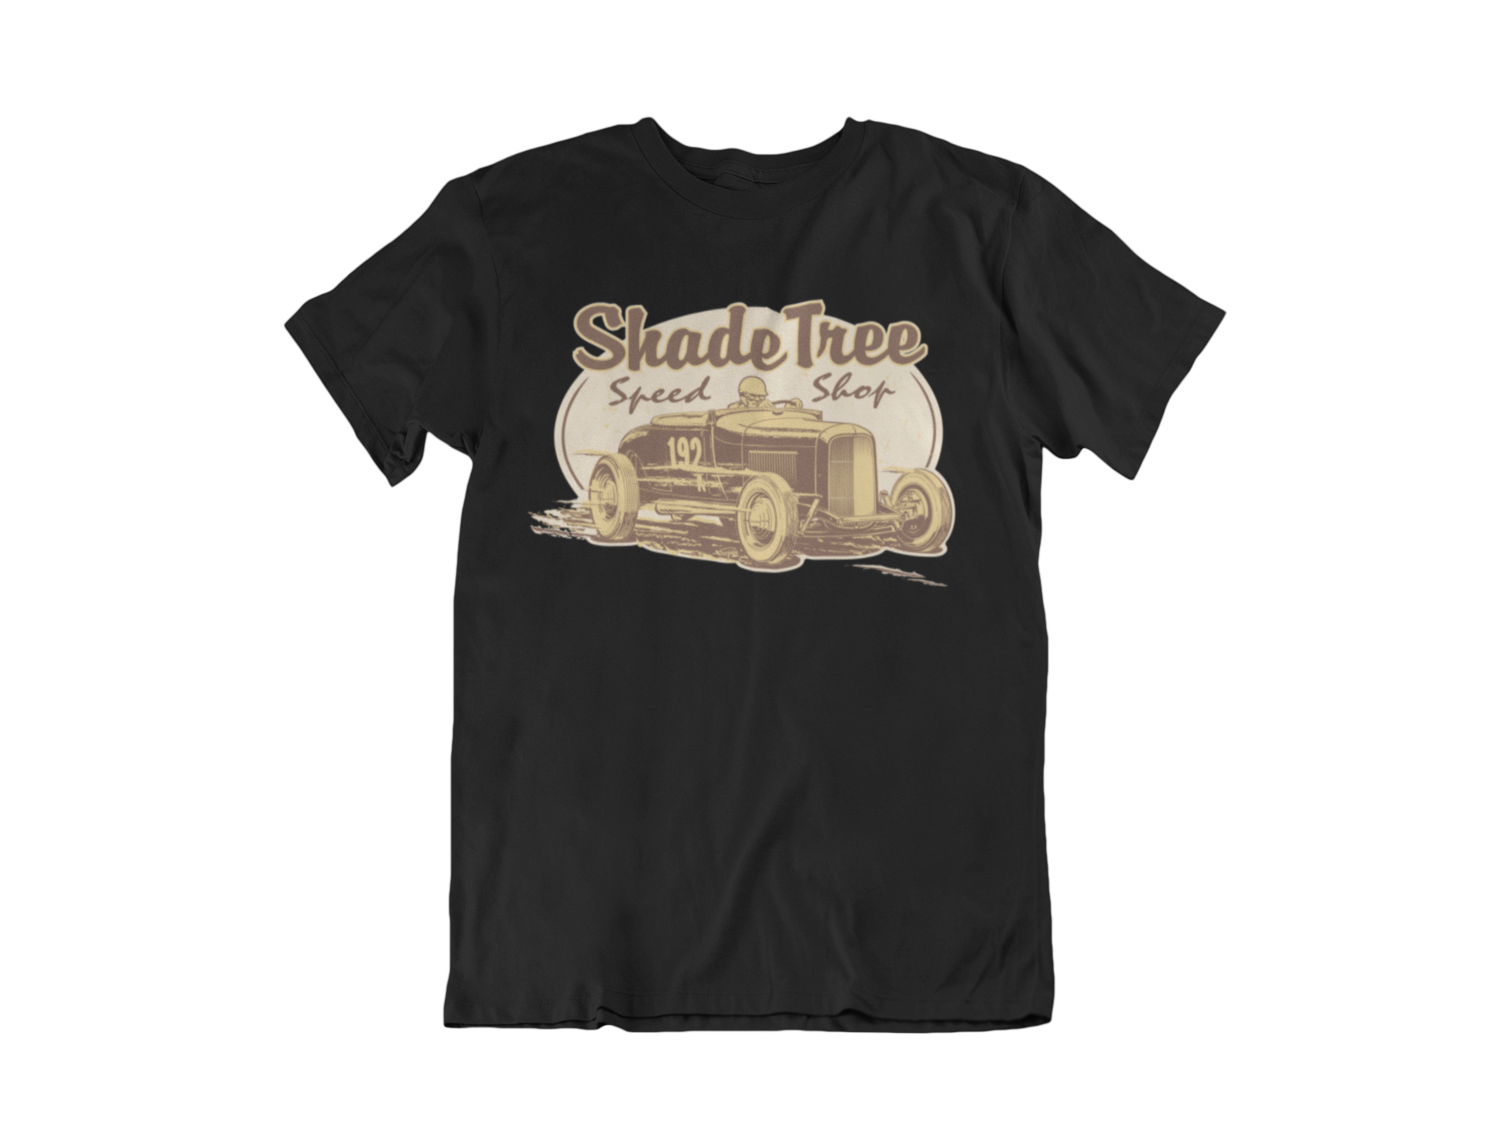 """SHADE TREE SPEED SHOP """"El Mirage"""" T-SHIRT MAN BY Ger """"Dutch Courage"""" Peters artwork"""